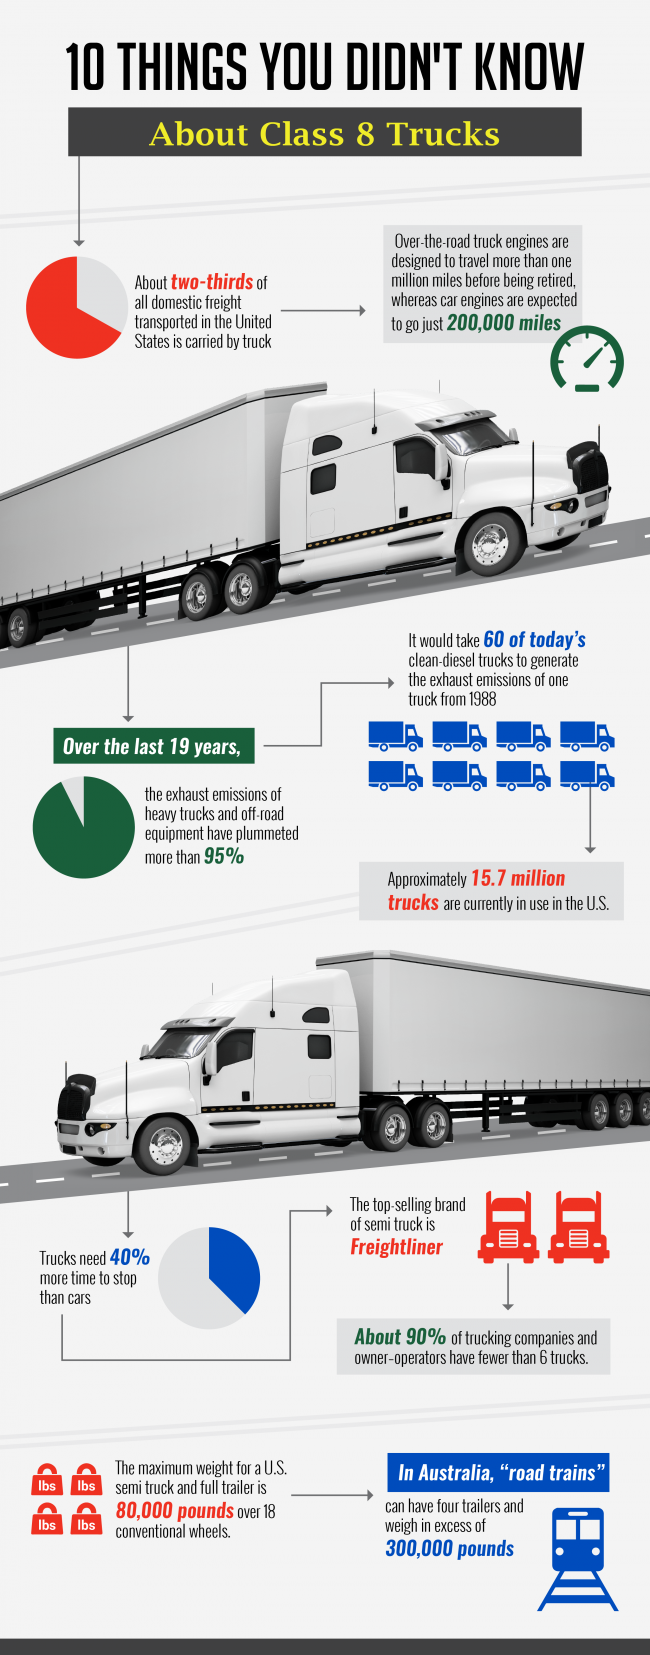 10 Things You Didn't Know About Class 8 Trucks